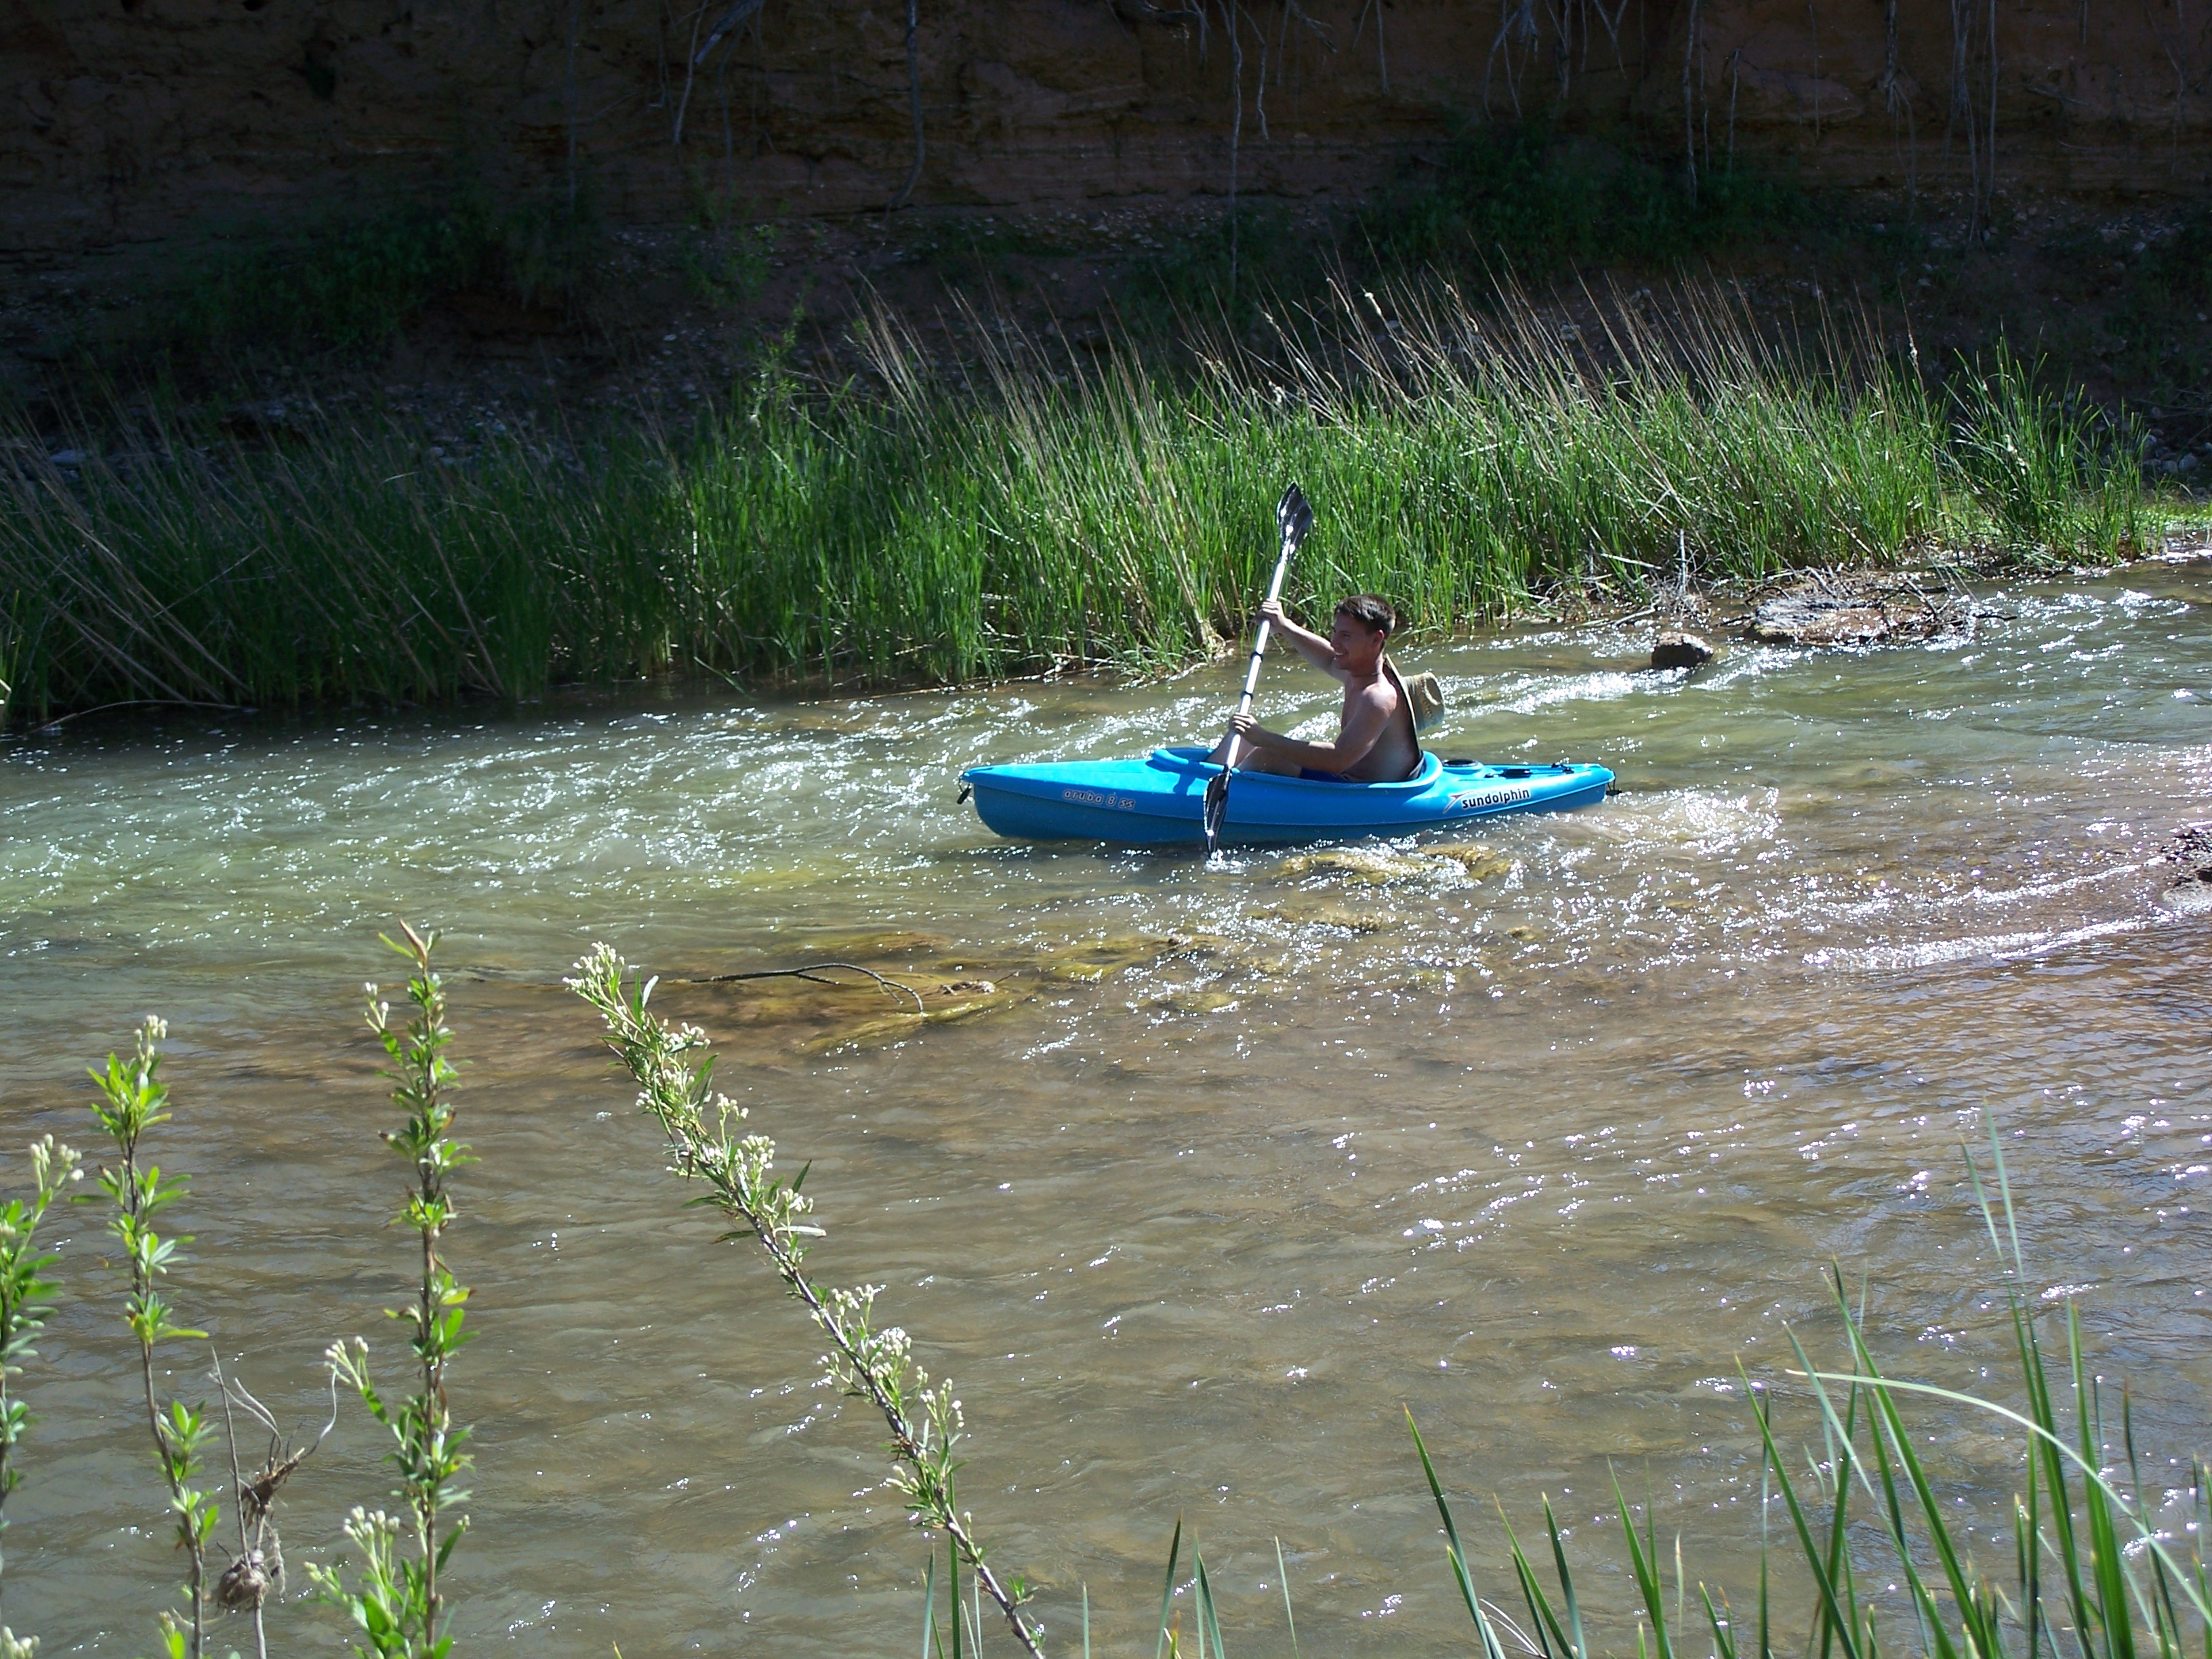 A young mand paddling a kayak down a small but fast-moving river.